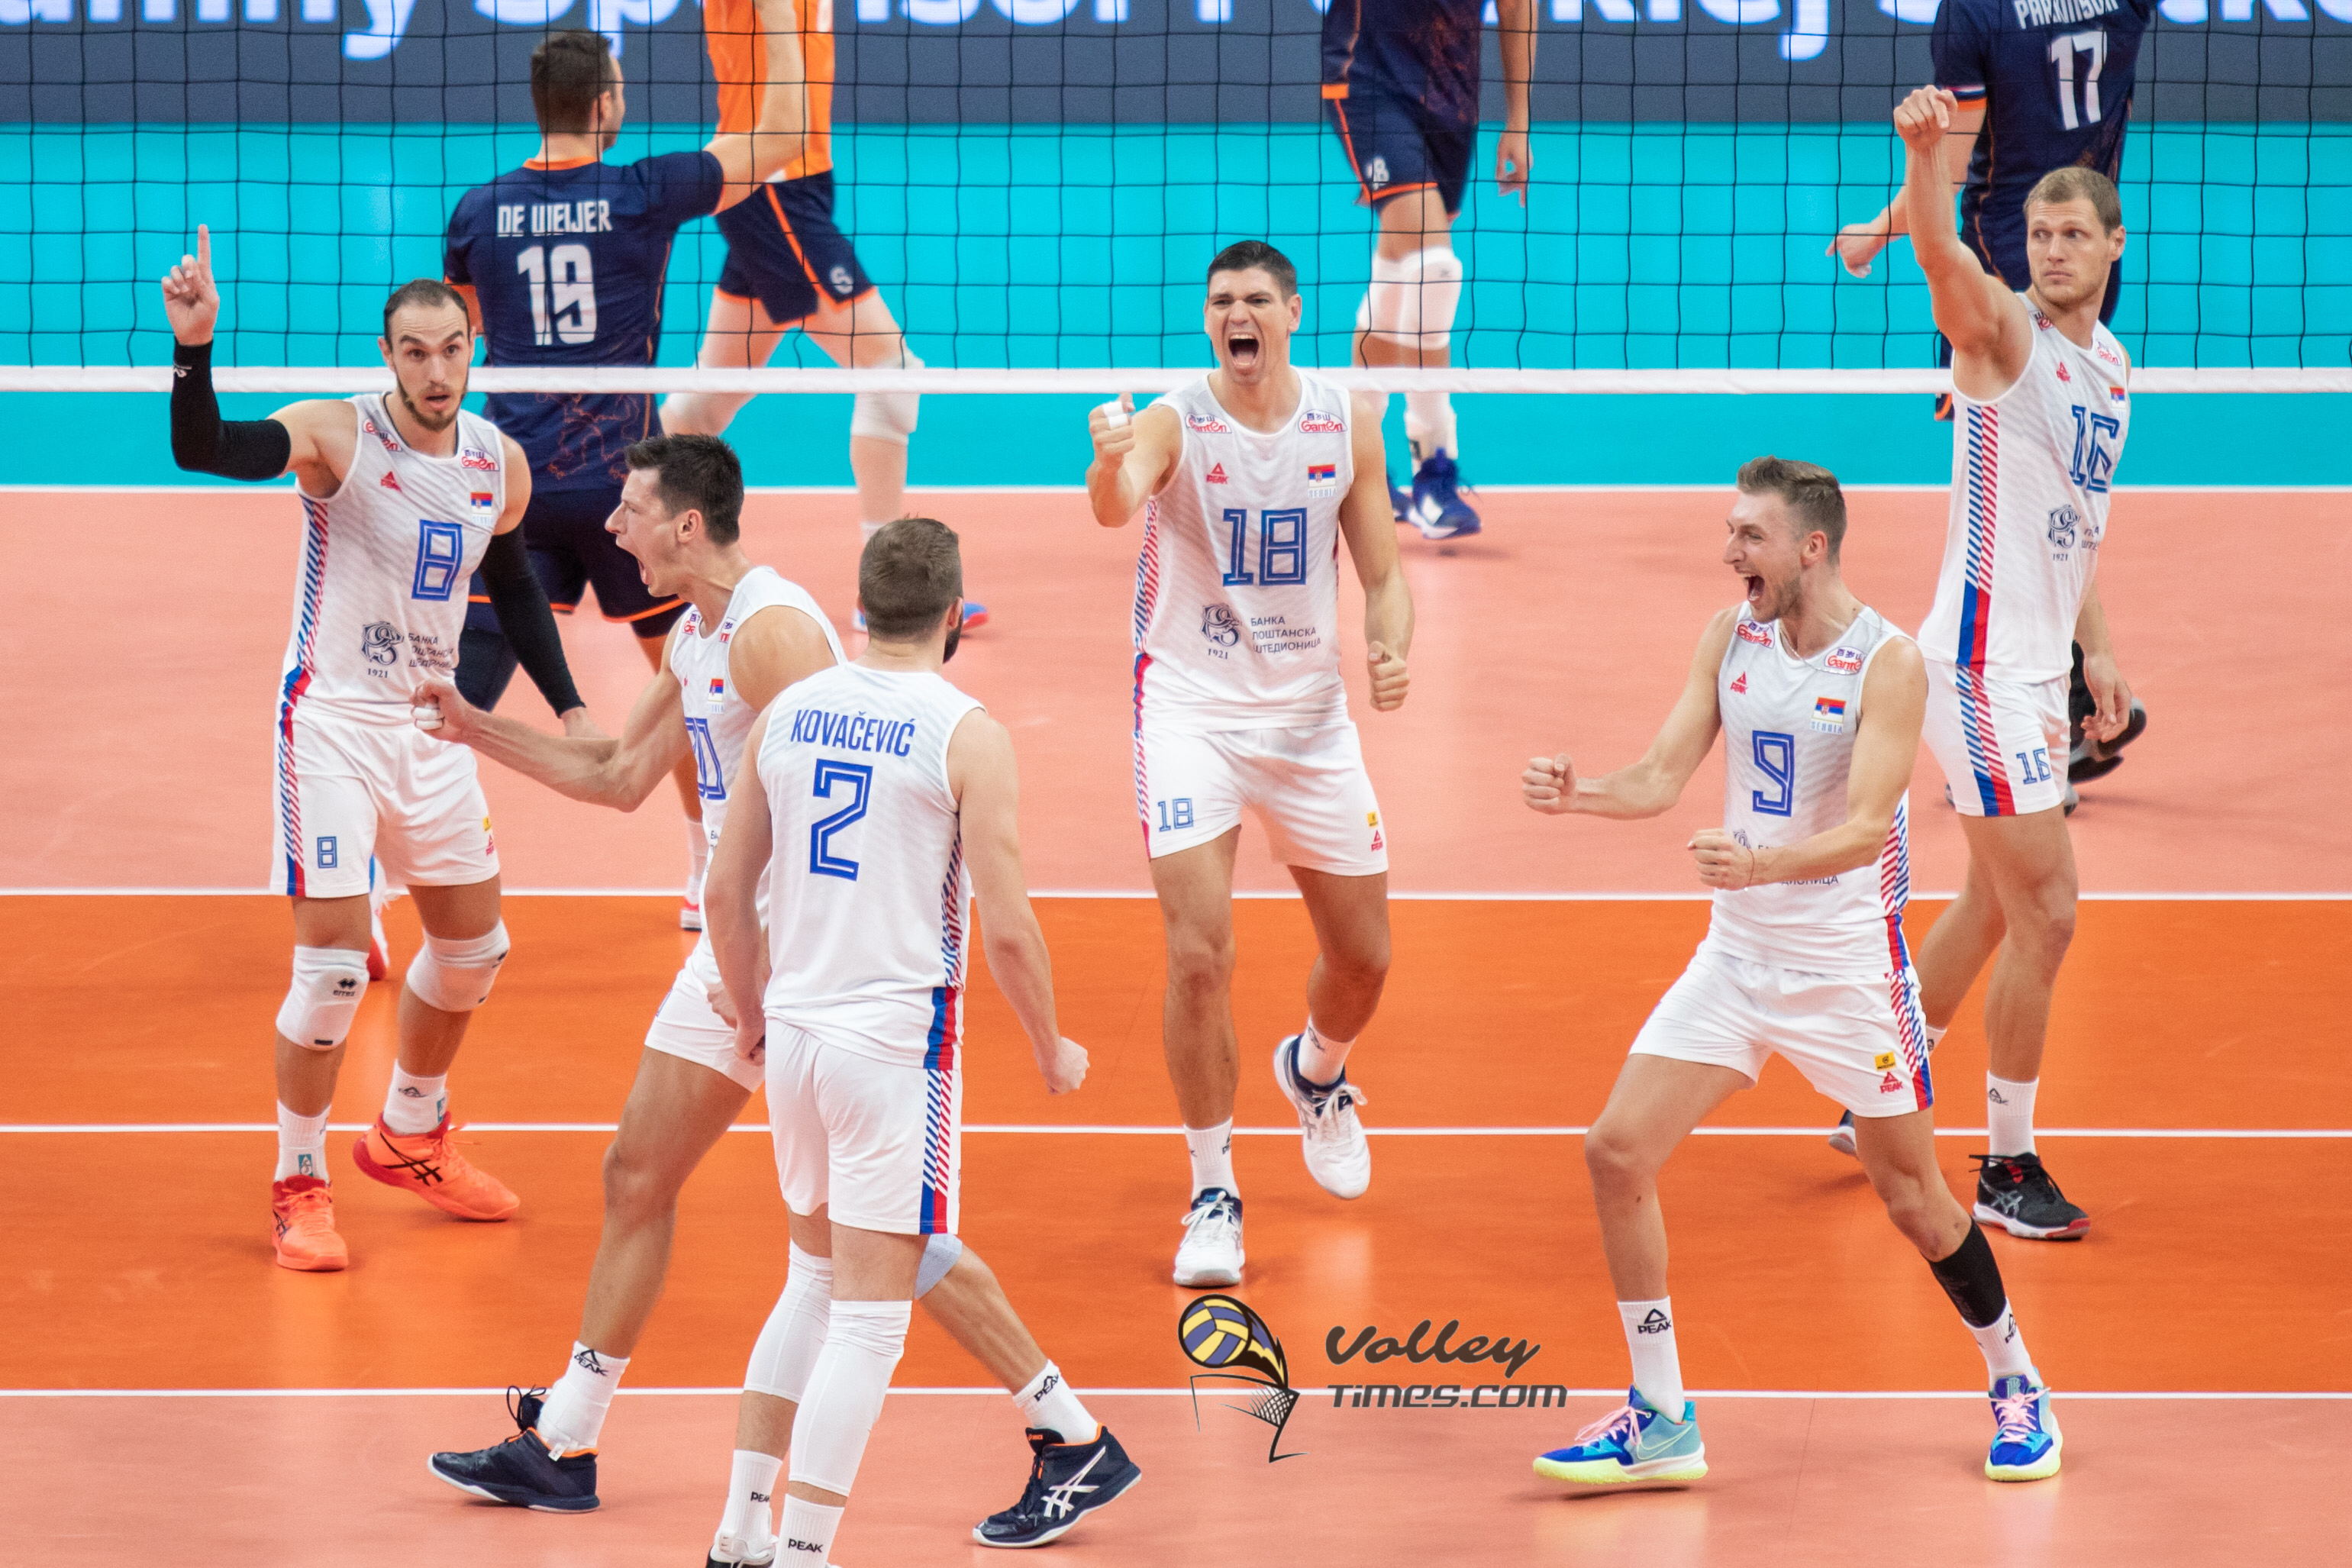 Eurovolley 2021: Serbia  shows its real face to become first semifinalist! Poland destroys Russia